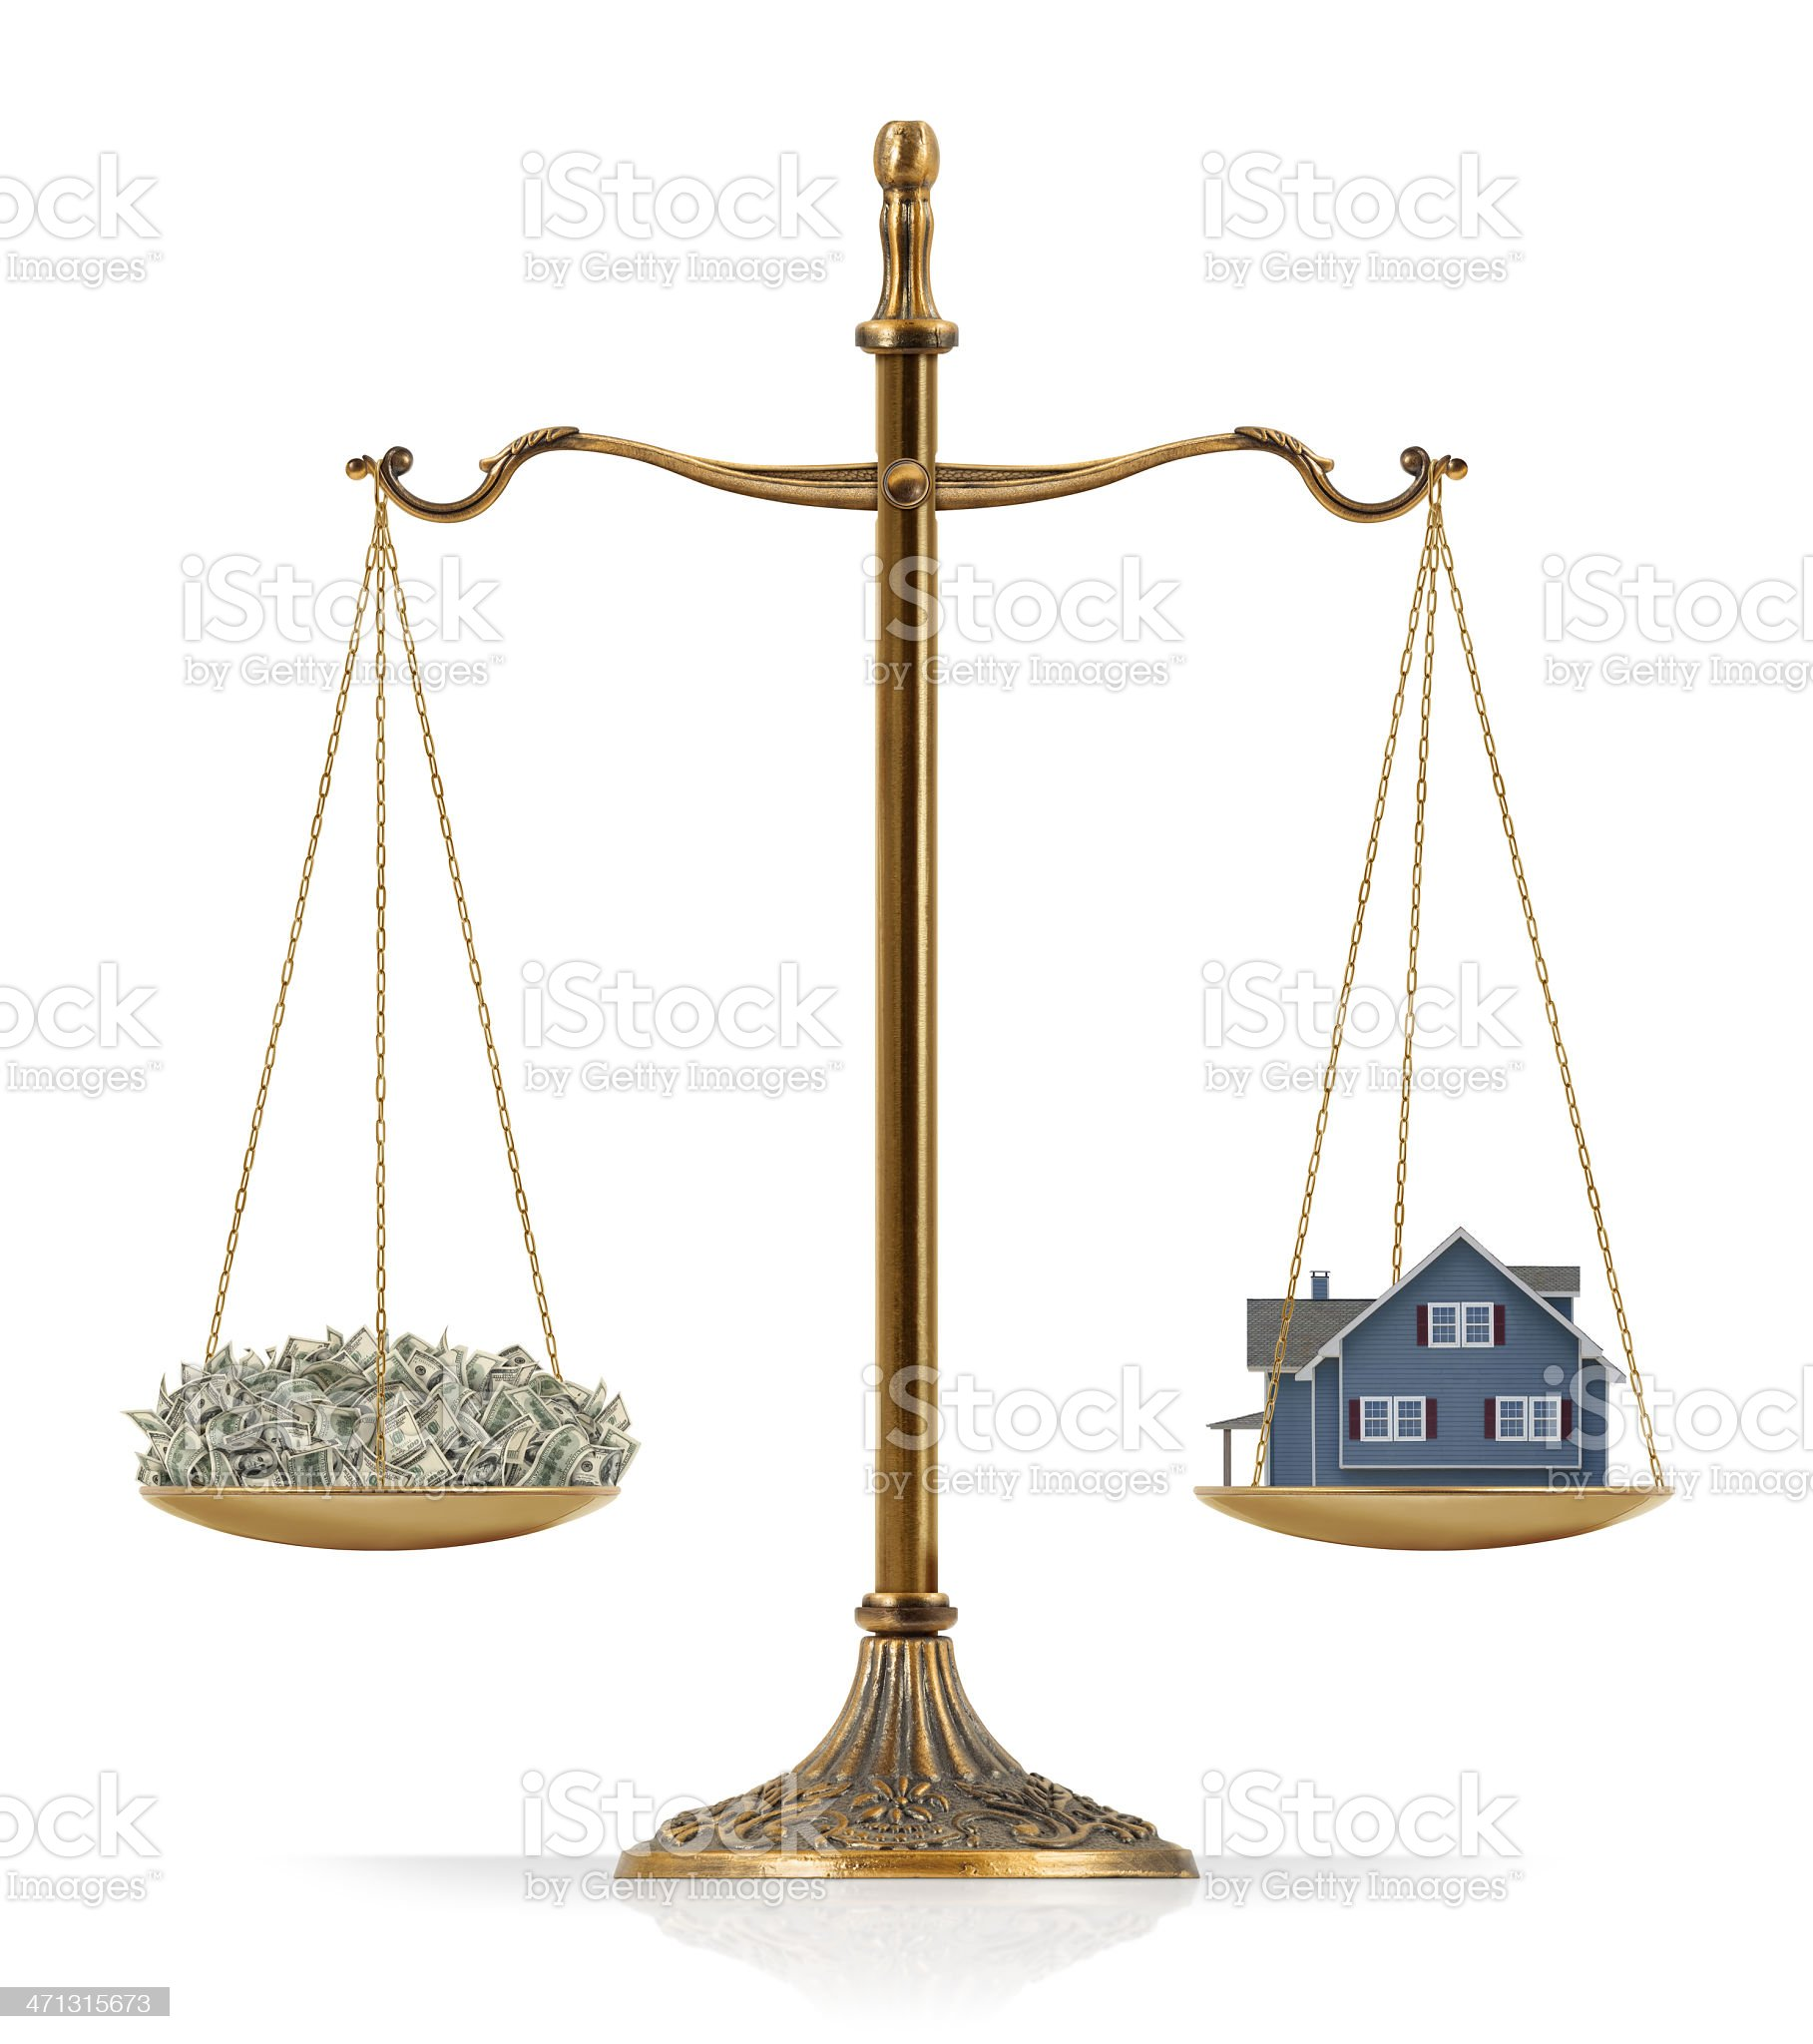 Equal Weighted: Money and House royalty-free stock photo